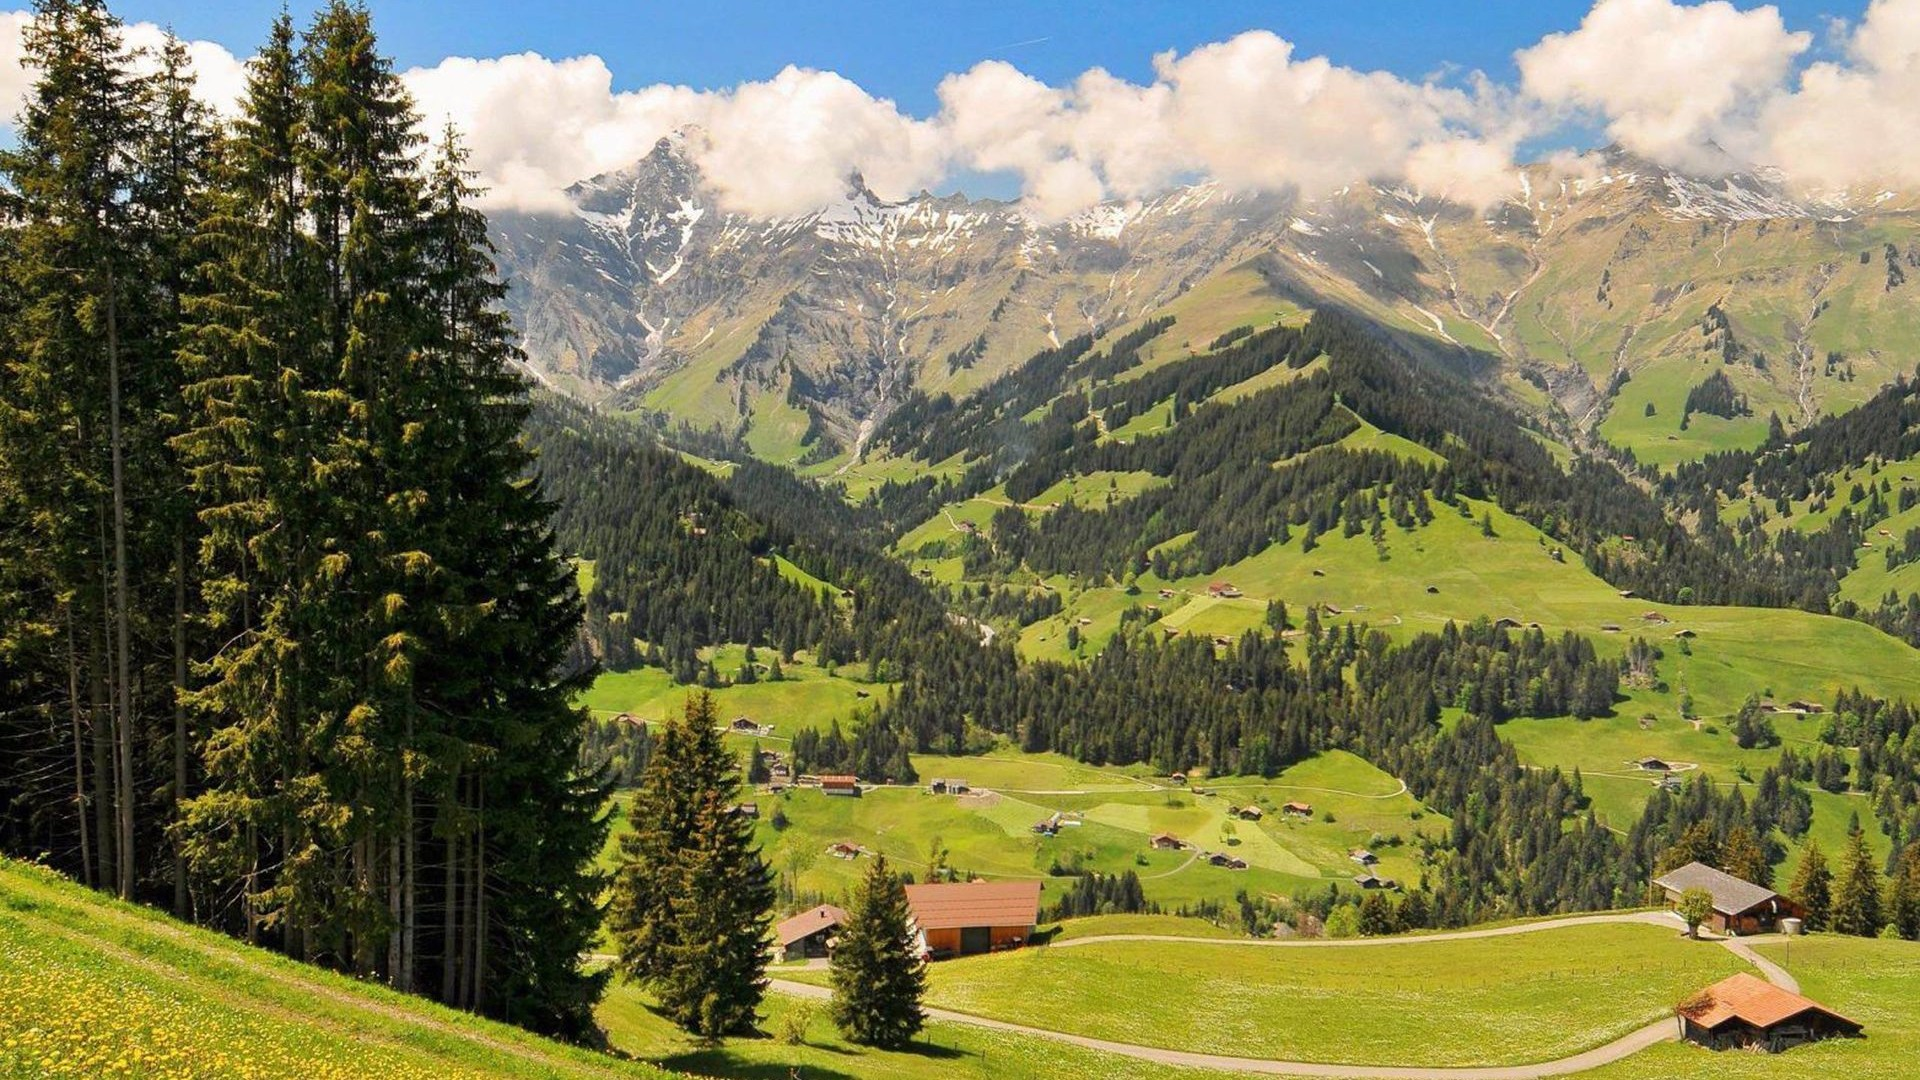 Swiss Alps  Switzerland HD Wallpaper